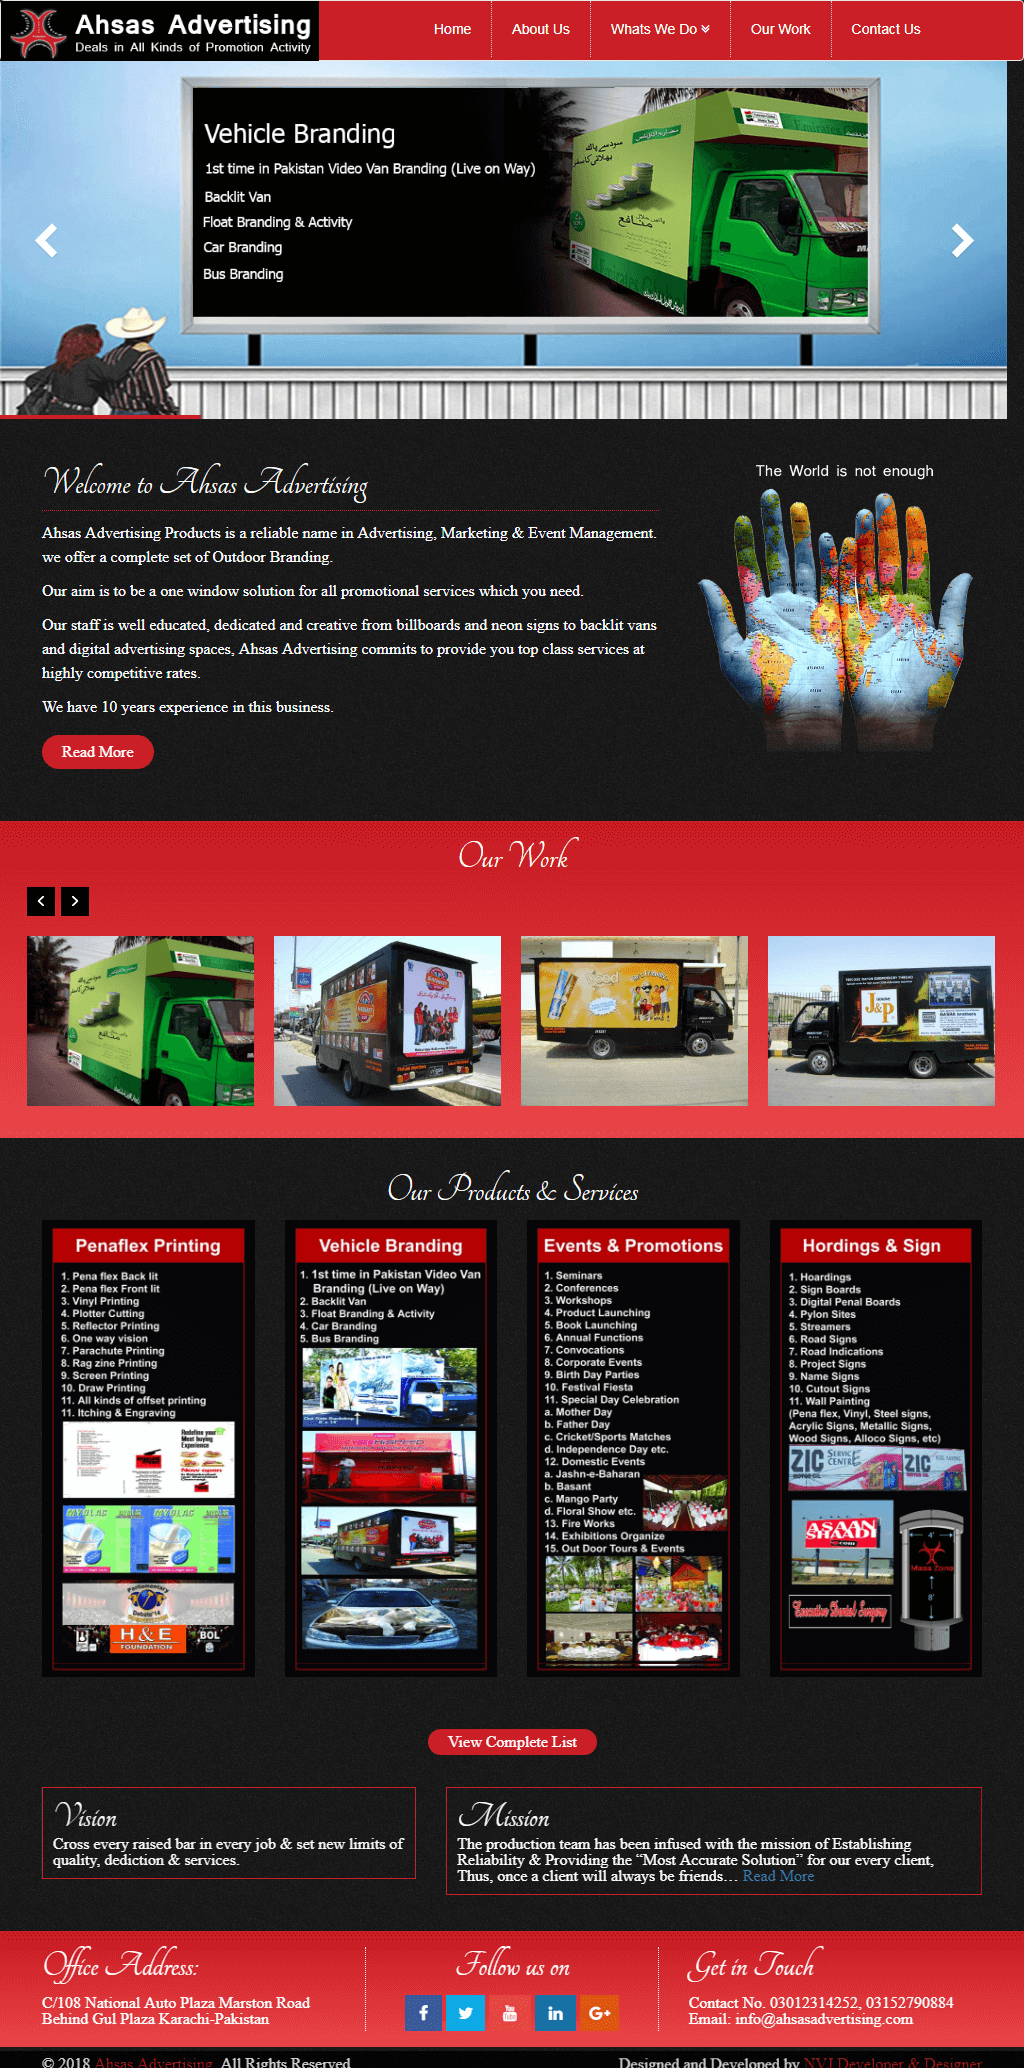 NVJ-Developers-Client-Advertising-Company